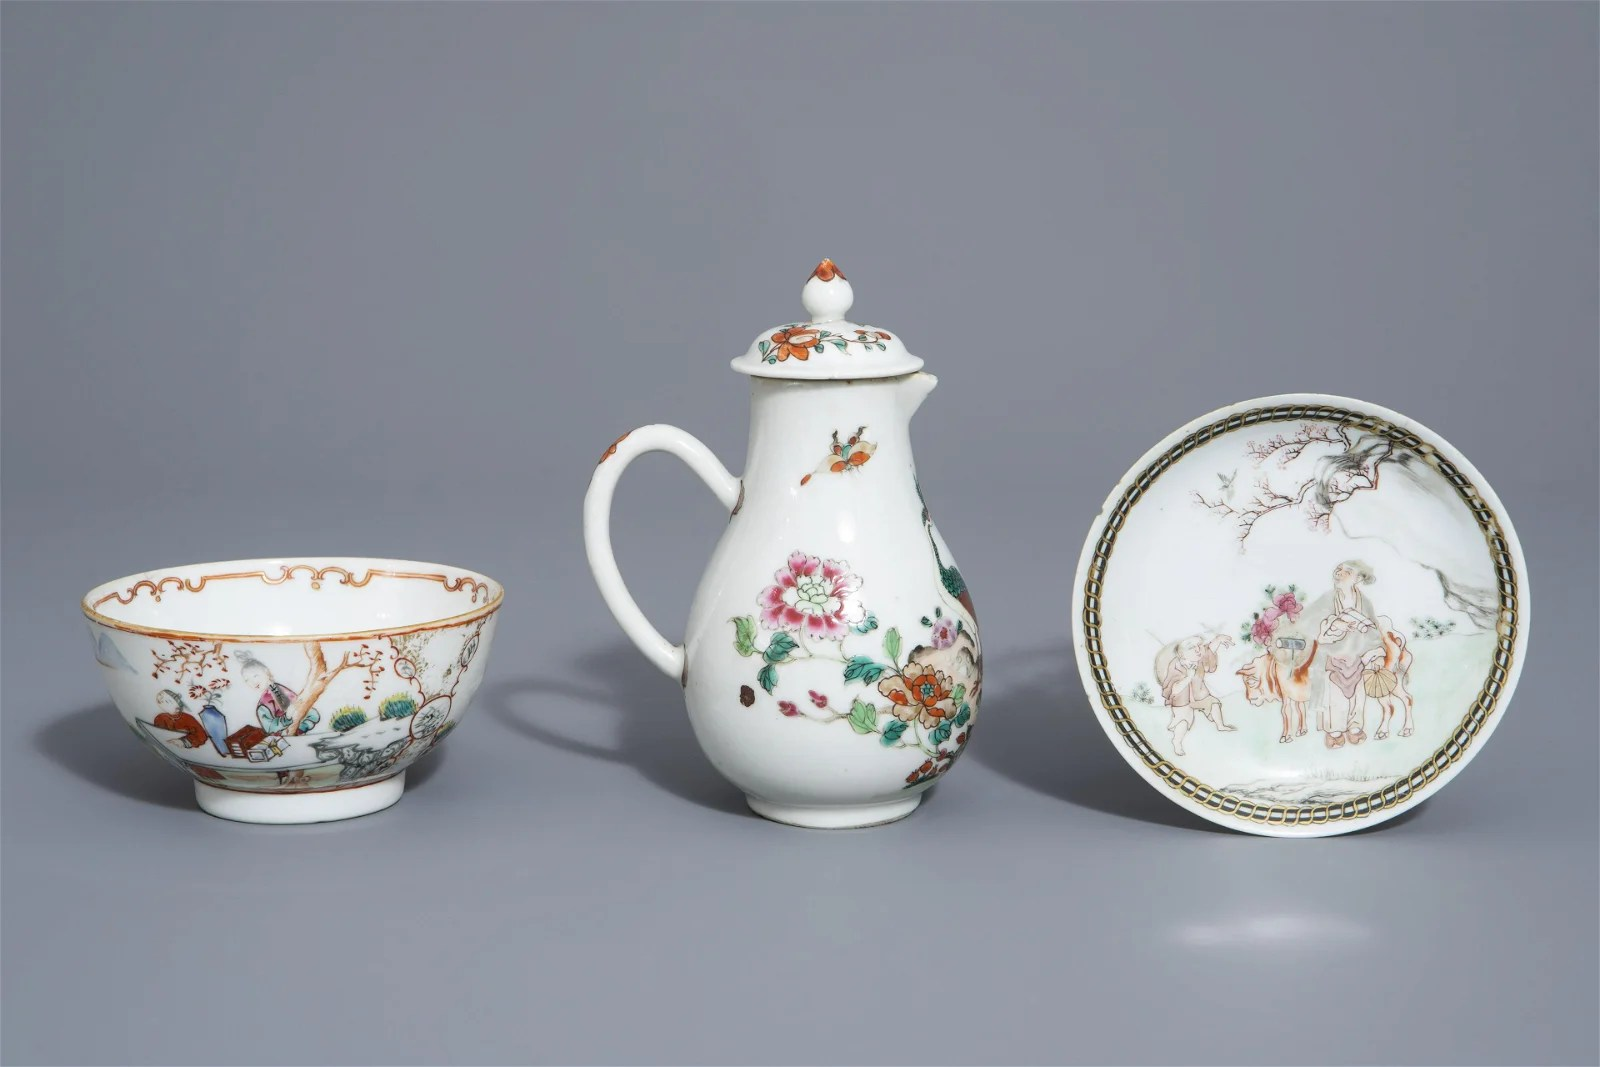 A Chinese famille rose 'peacock' ewer, a fine saucer